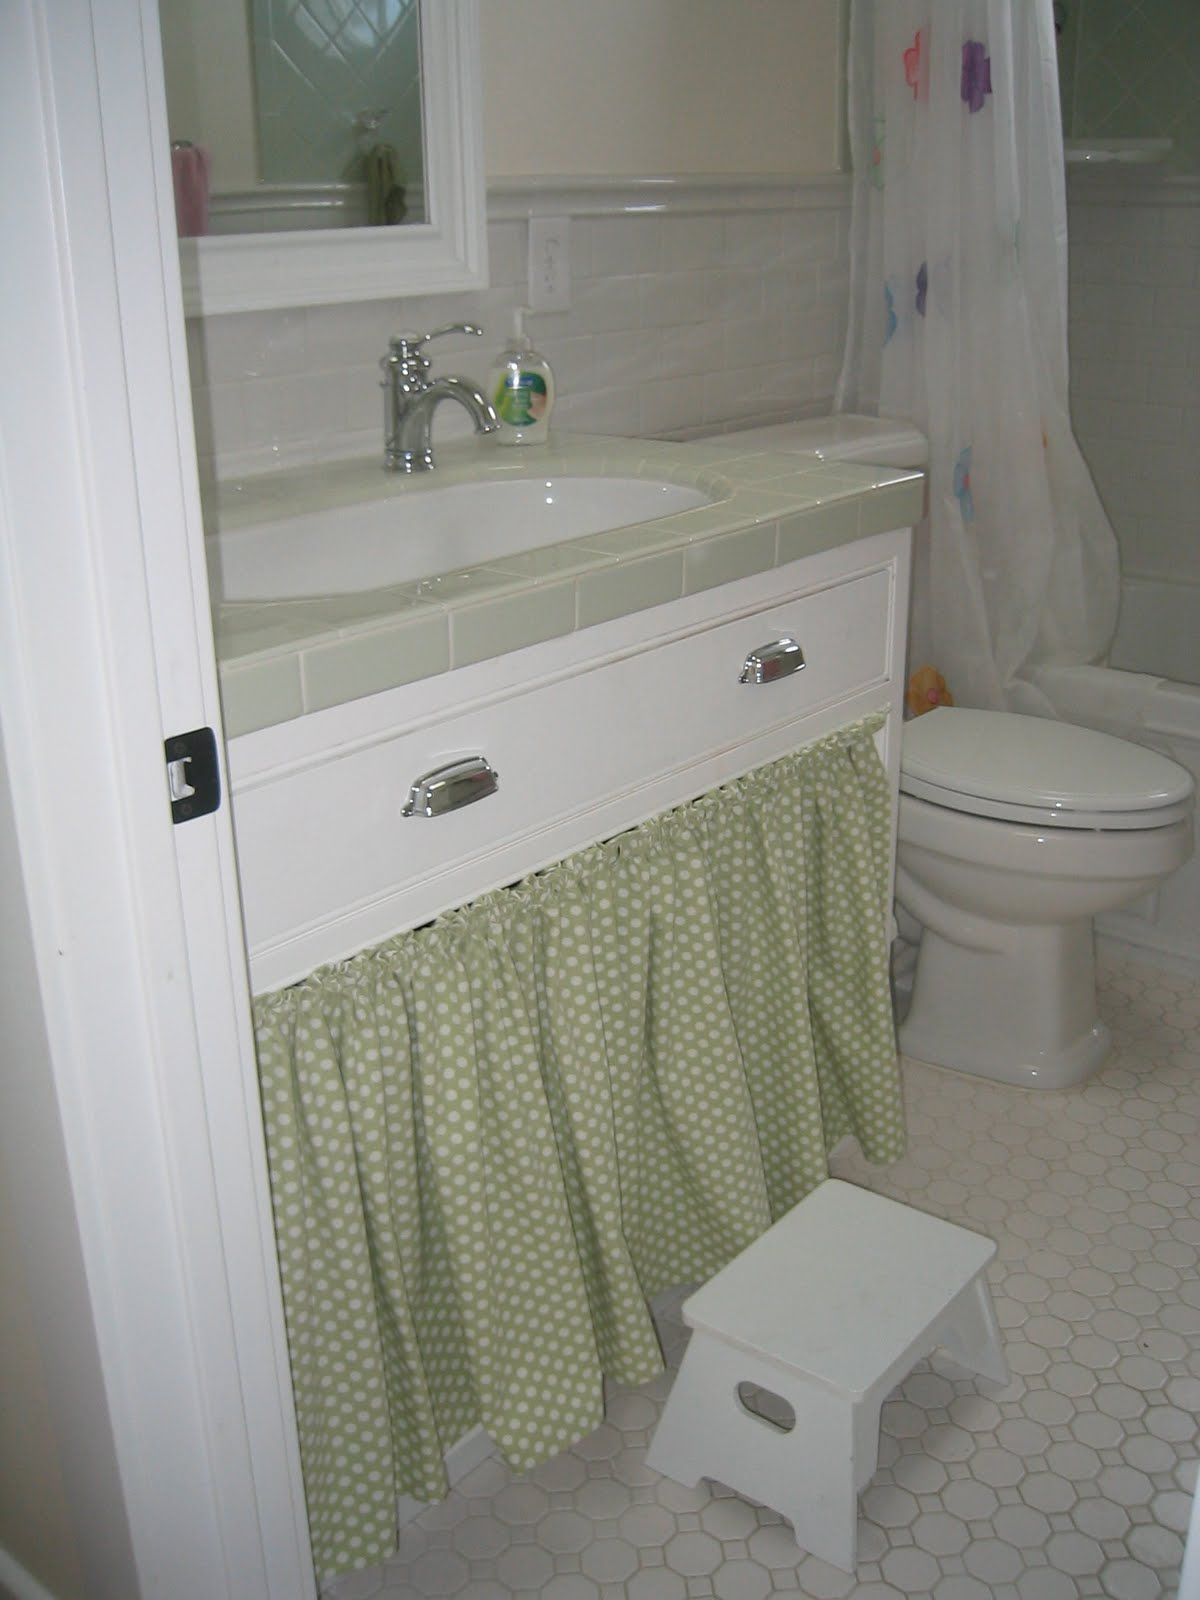 A little of this that and the other bathroom sink skirts